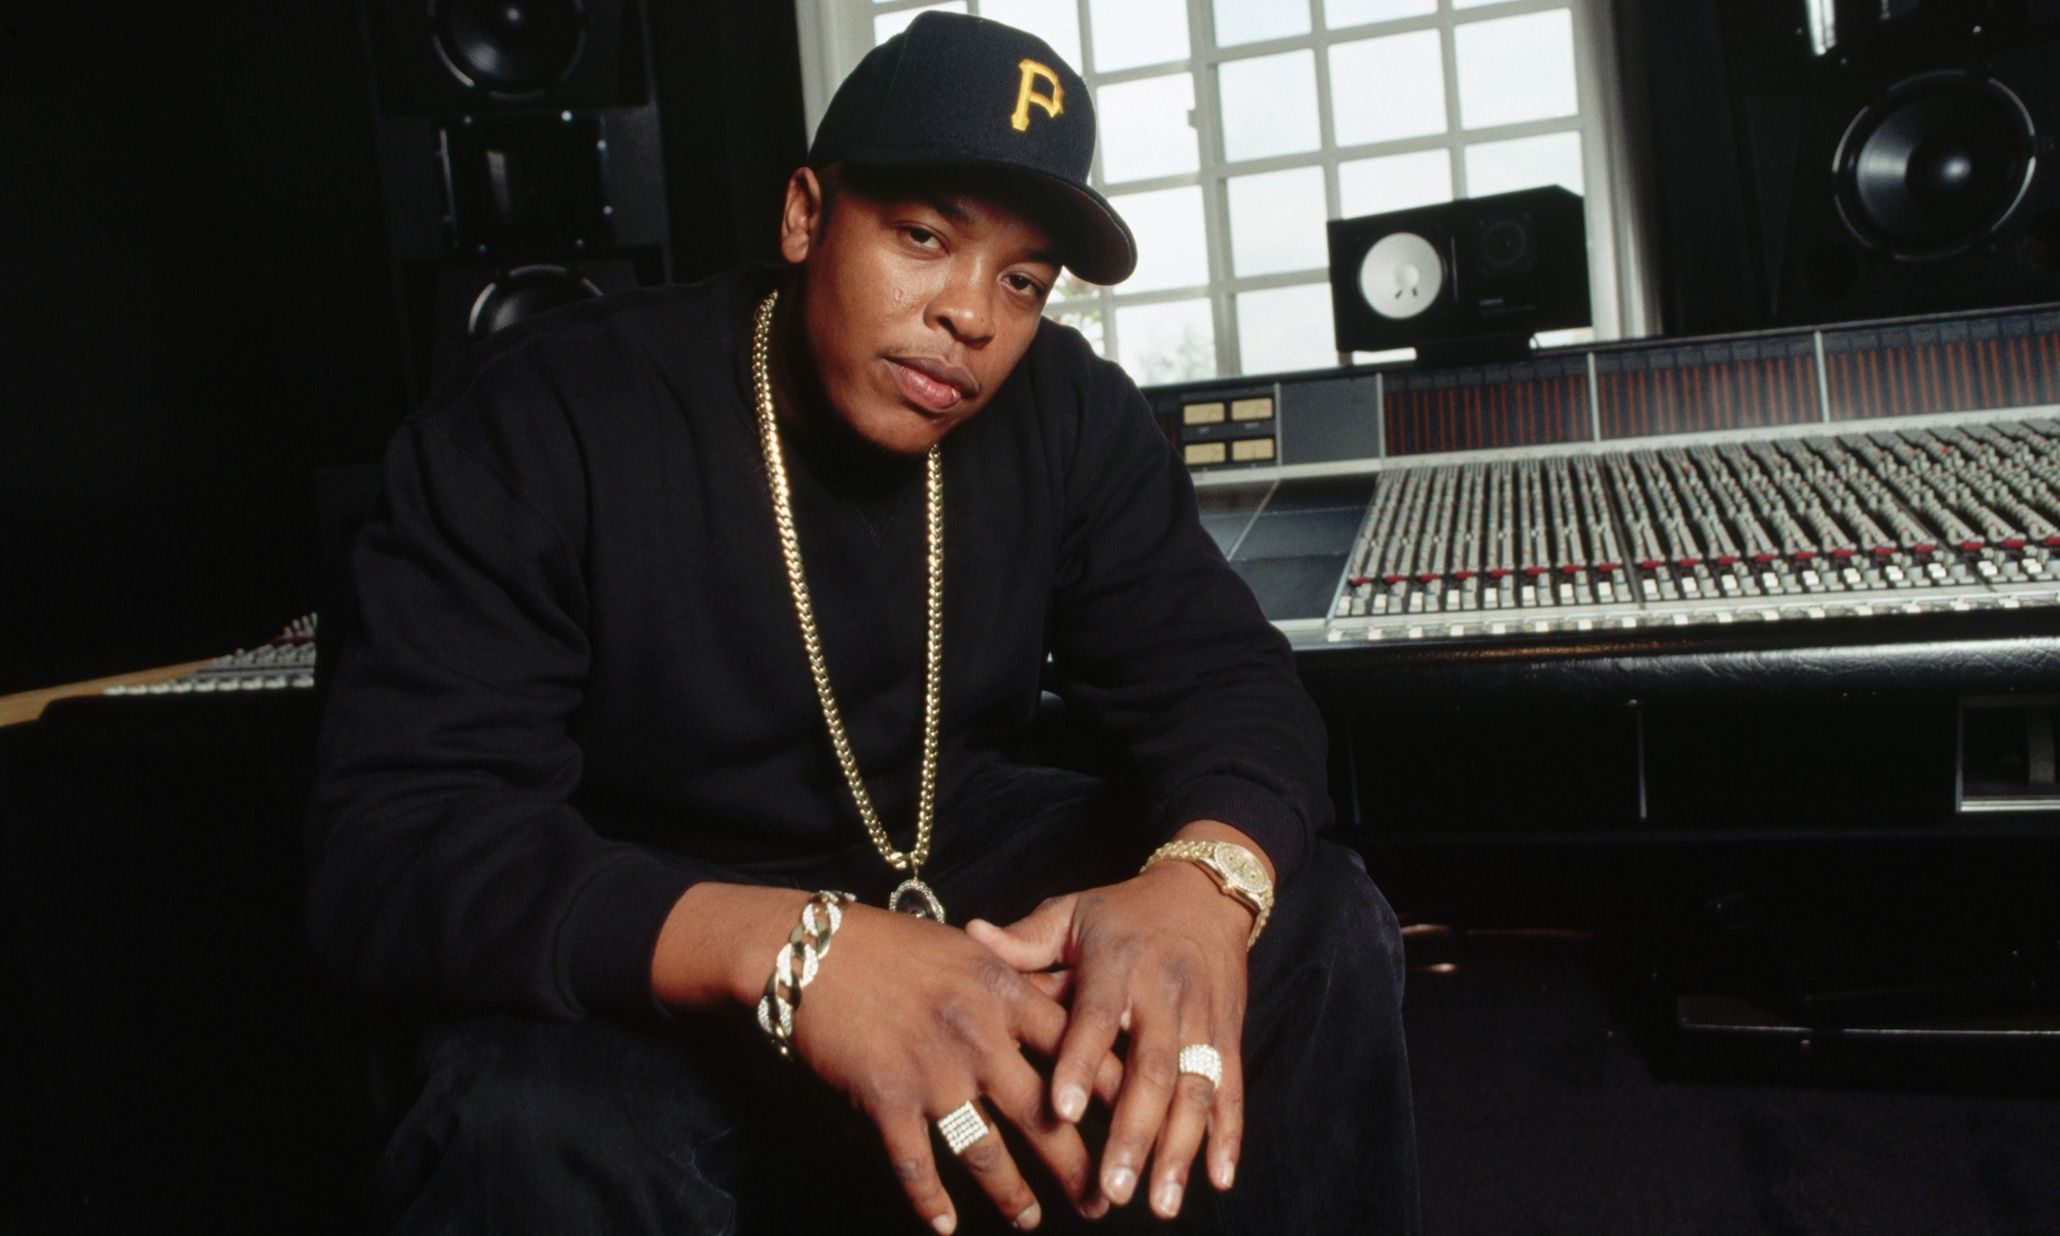 Dr Dre at 50: NWA, bangers and beef – the moments that made a megastar